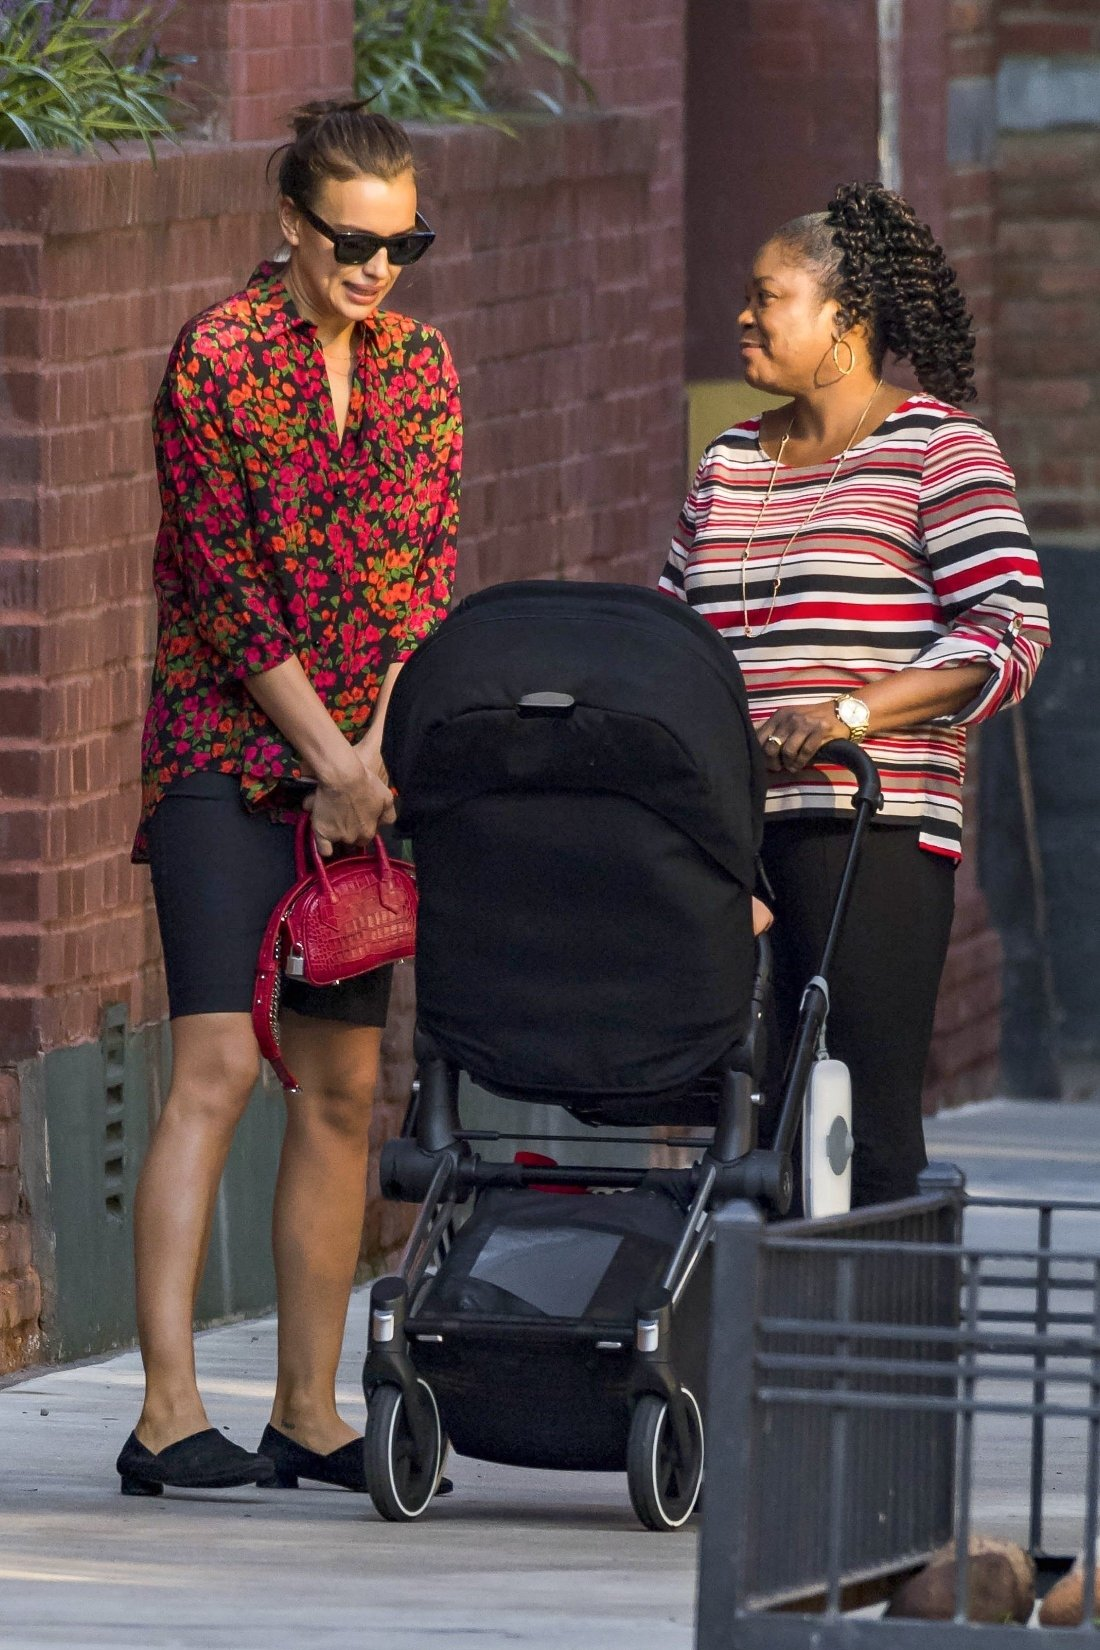 ** RIGHTS: WORLDWIDE EXCEPT IN BELGIUM, FRANCE, GERMANY, NETHERLANDS, POLAND ** New York, NY  - *EXCLUSIVE*  - Irina Shayk and her TWO nannies going for a stroll this morning in NY with a sleepy baby Lea de Seine. The famous supermodel wore a red graphic blouse matching her black skirt and comfy flats.  Pictured: Irina Shayk  BACKGRID USA 3 OCTOBER 2018, Image: 389645113, License: Rights-managed, Restrictions: , Model Release: no, Credit line: Profimedia, AKM-GSI